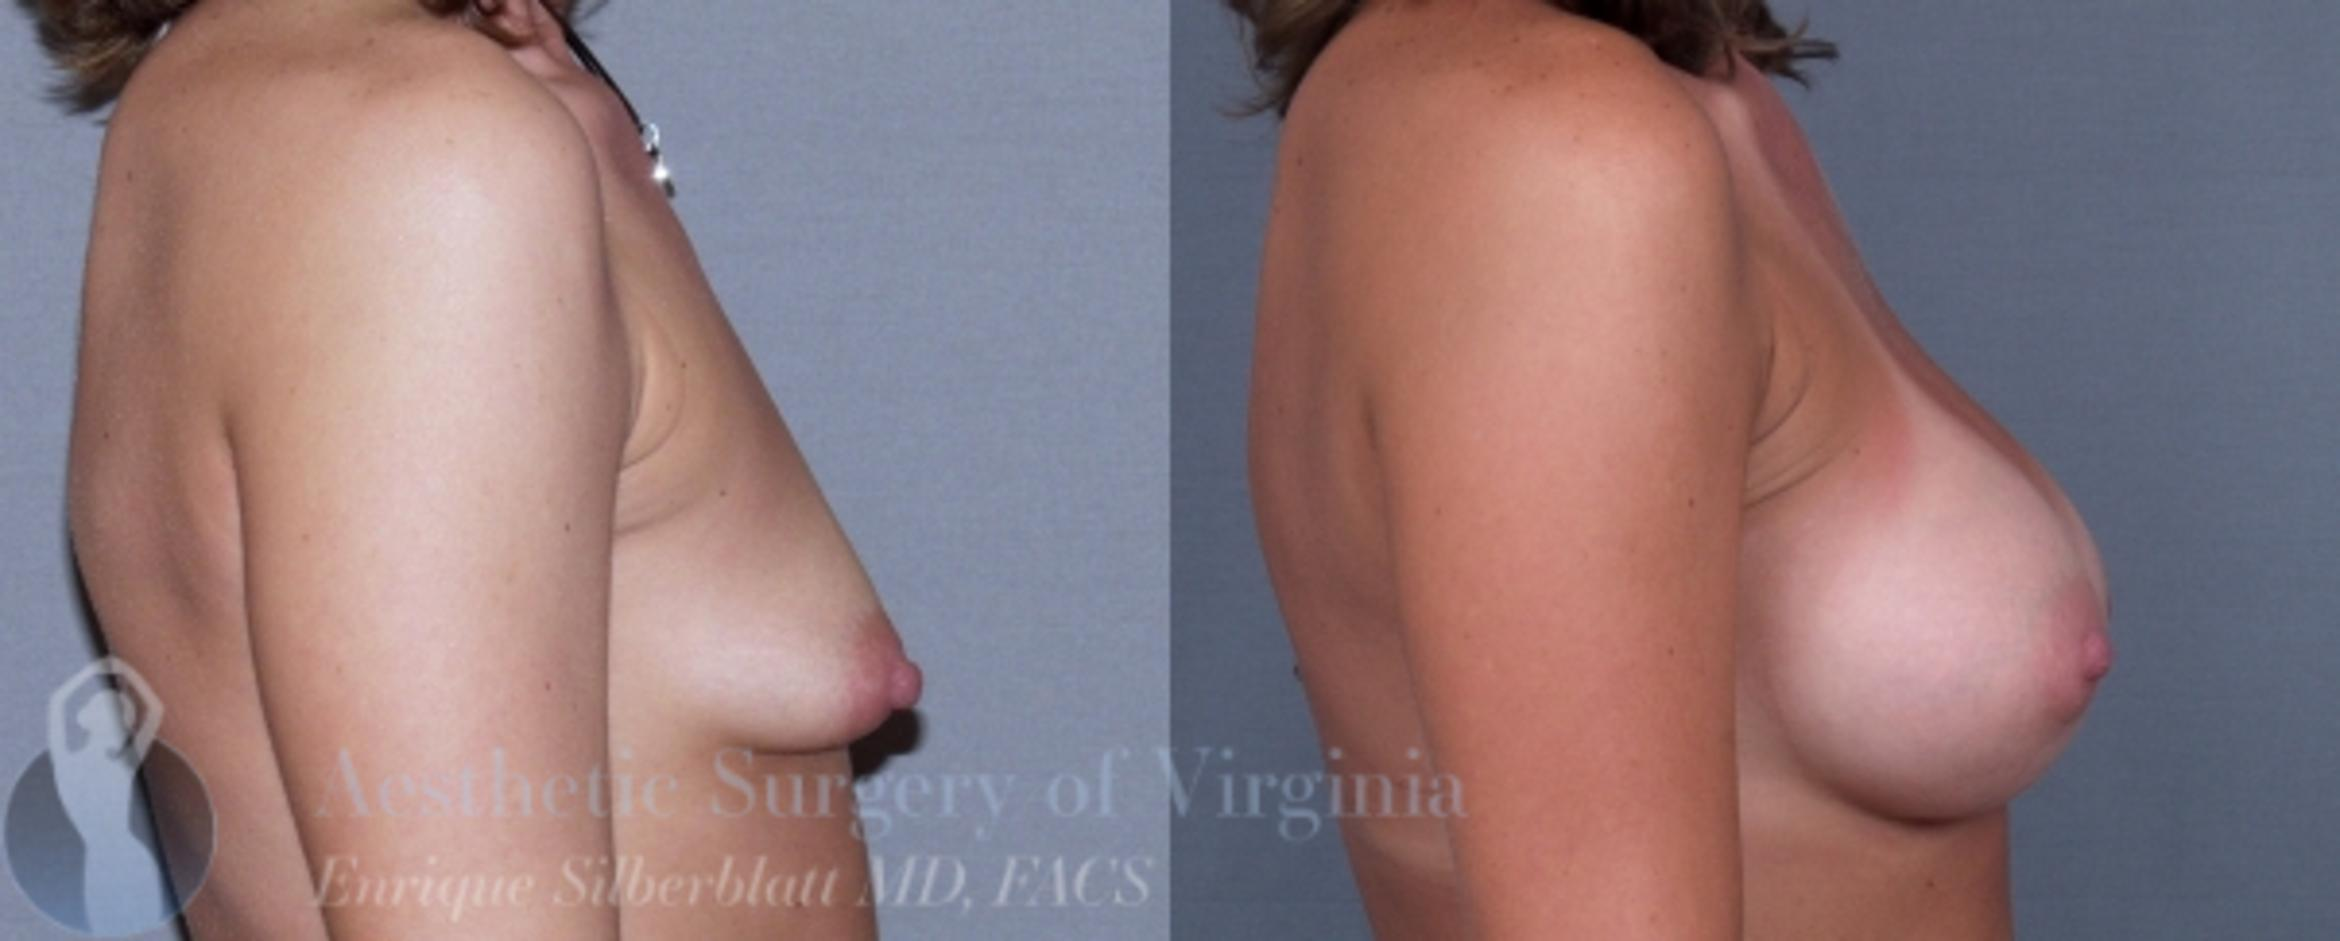 Breast Augmentation Case 4 Before & After View #5 | Roanoke, VA | Aesthetic Surgery of Virginia: Enrique Silberblatt, MD